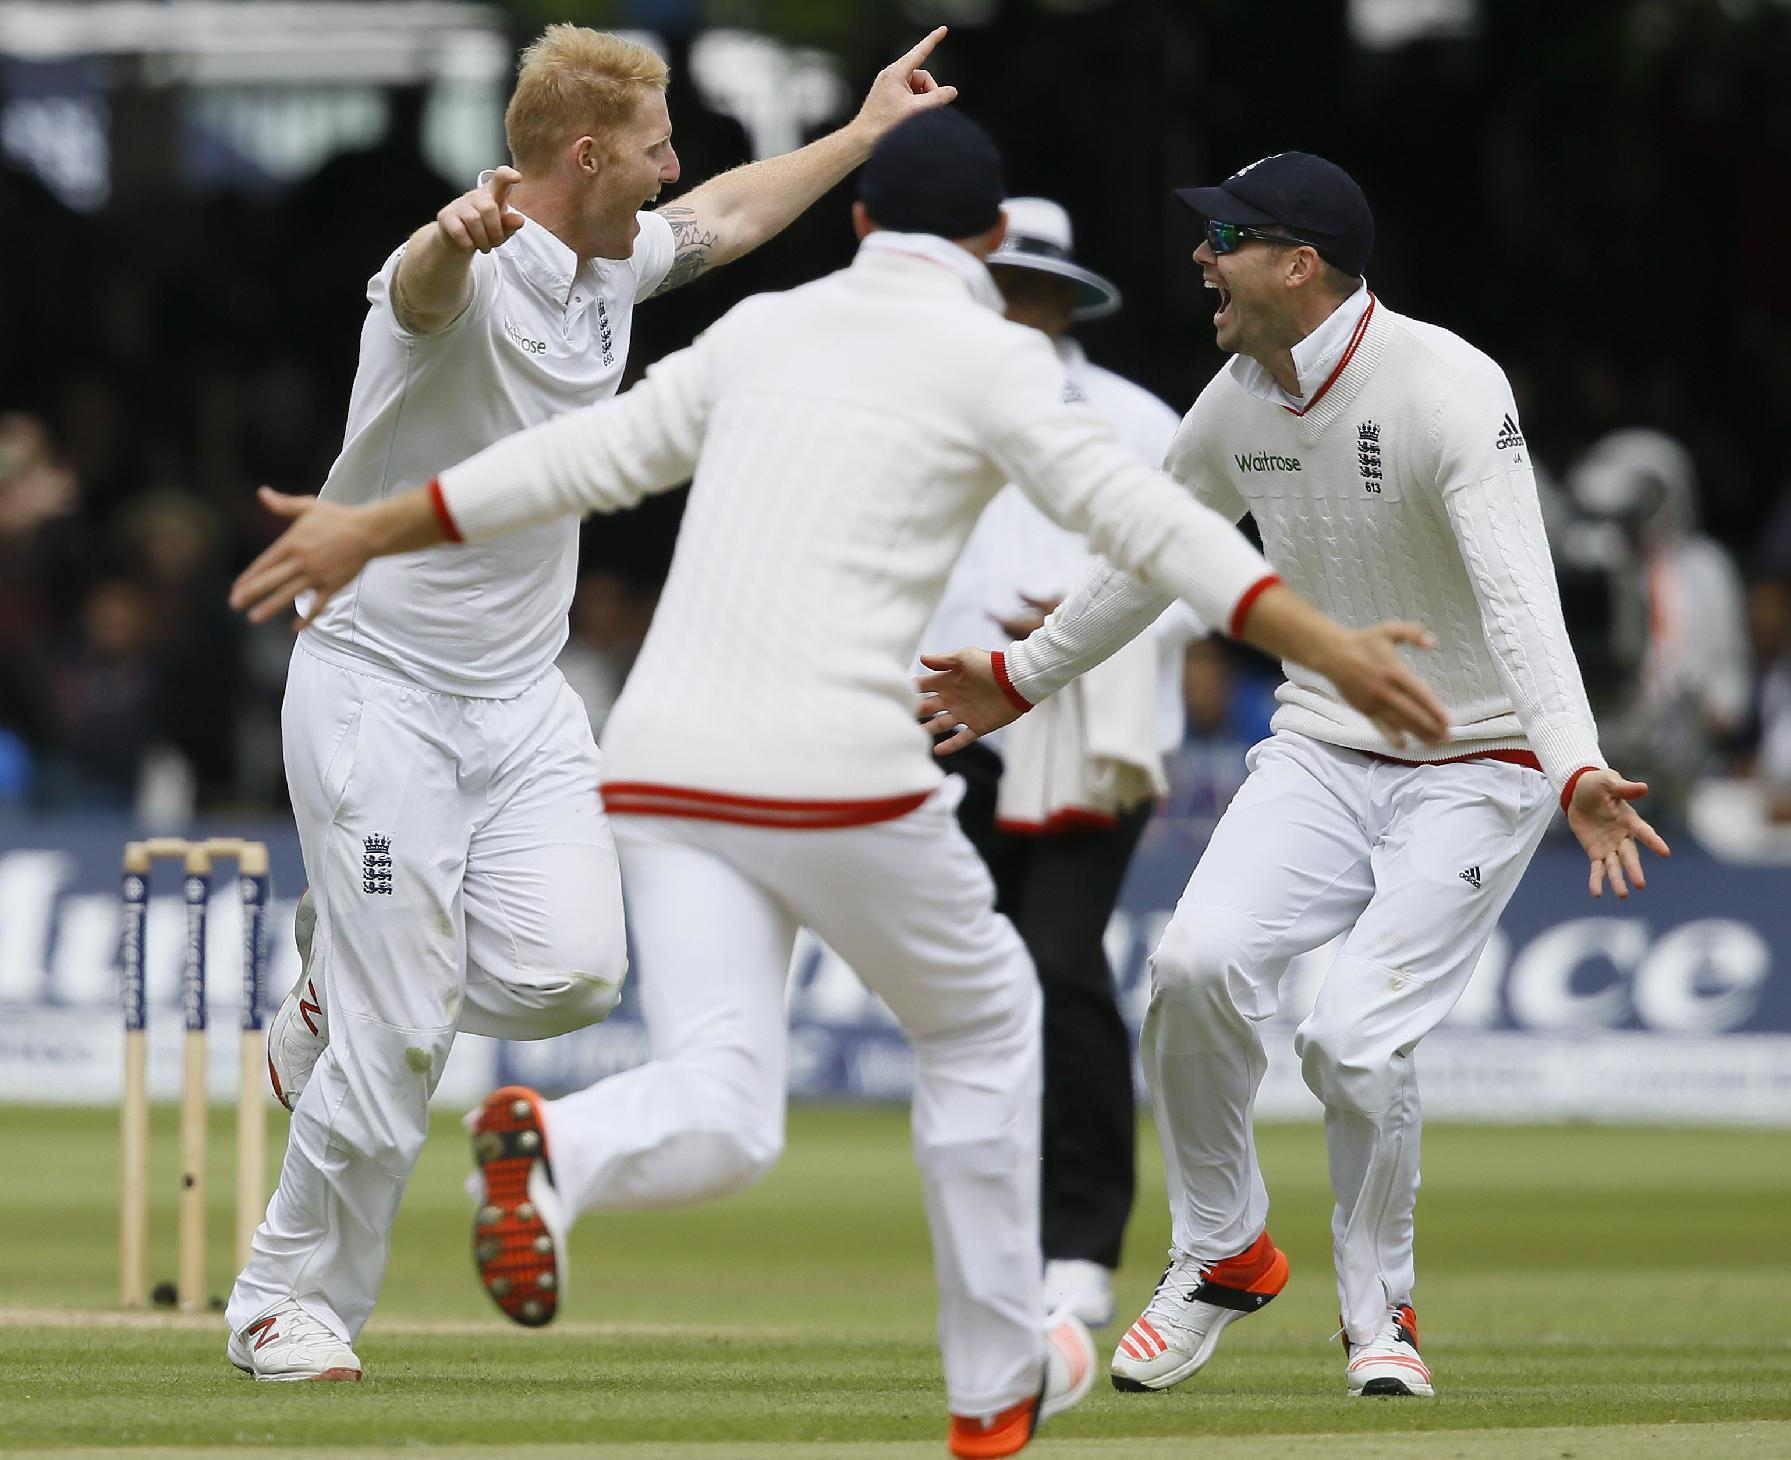 England beat NZ by 124 runs in 1st test at Lord's